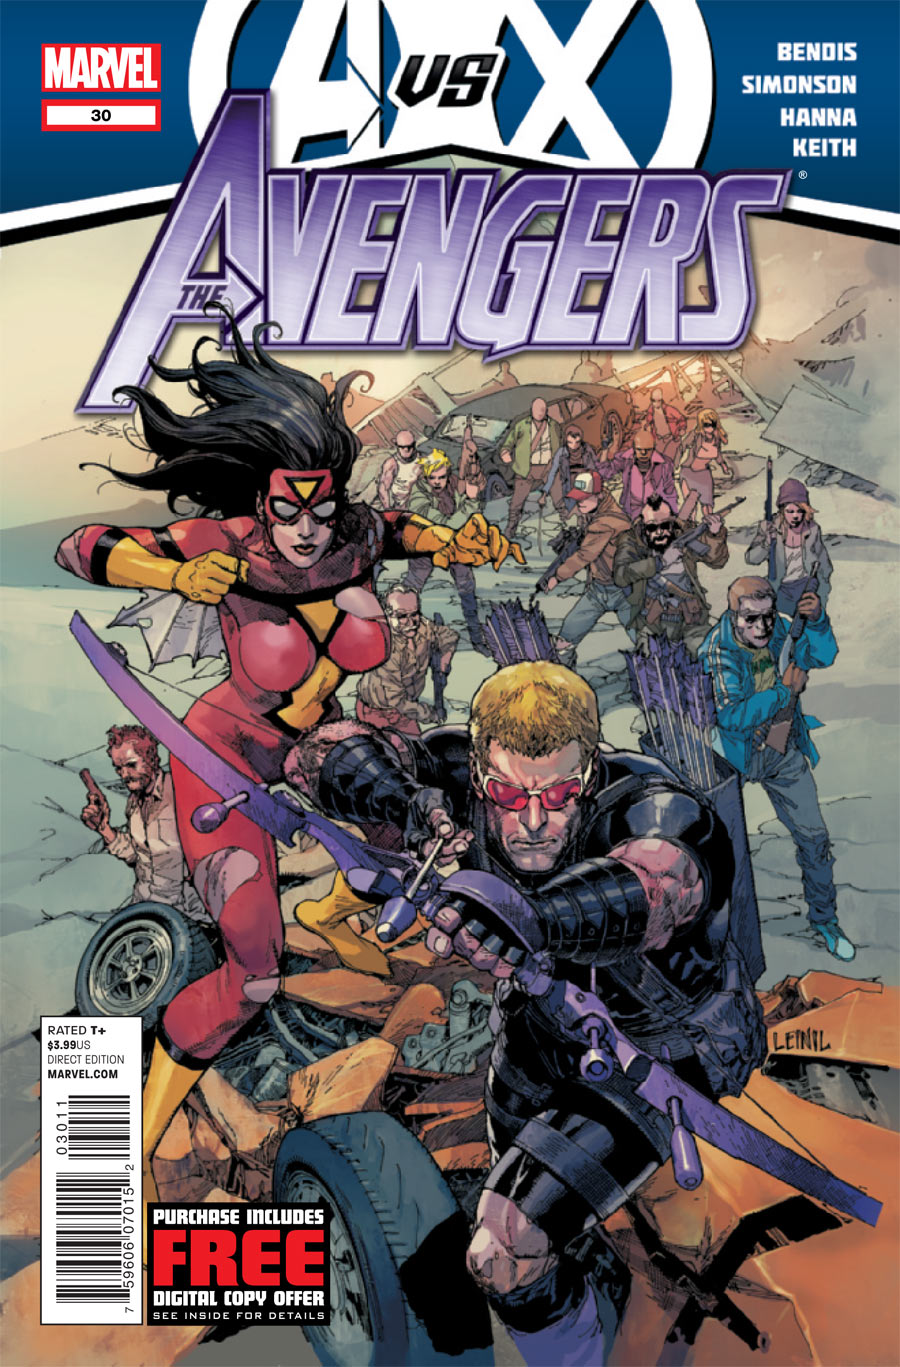 The Avengers issue 30